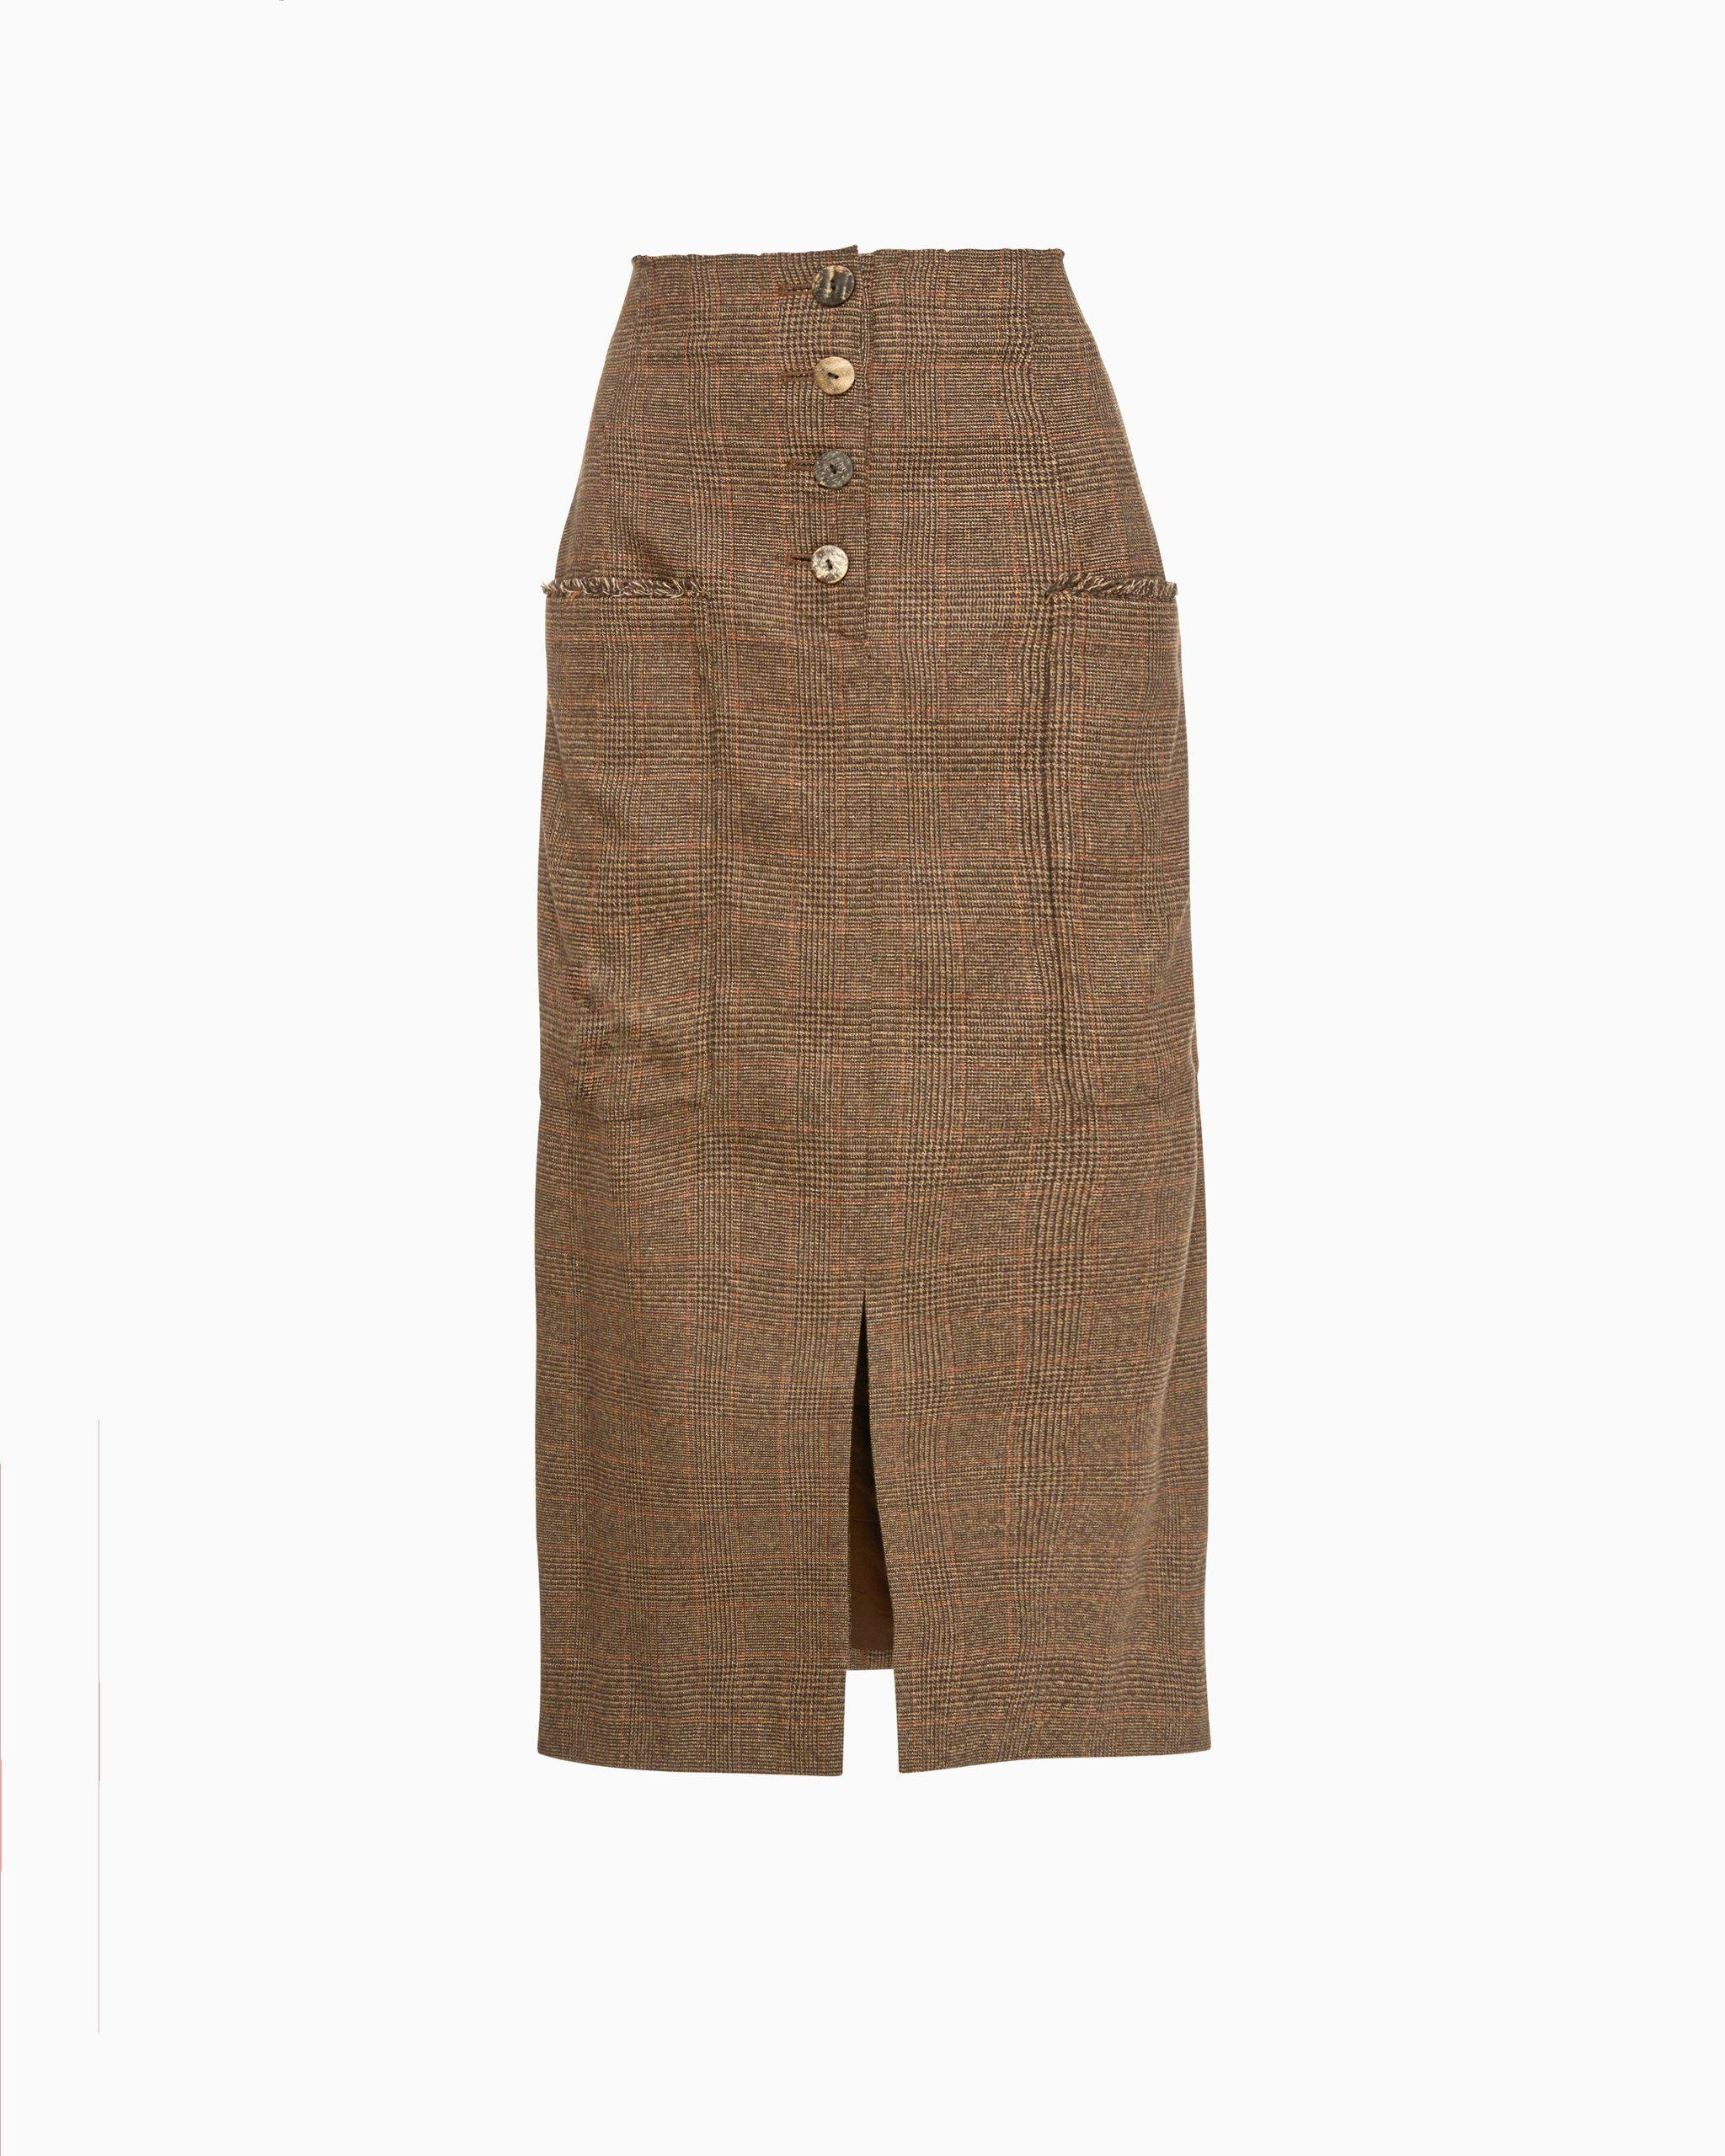 Carmen Skirt Brown Check Suiting - SPECIAL PRICE 1